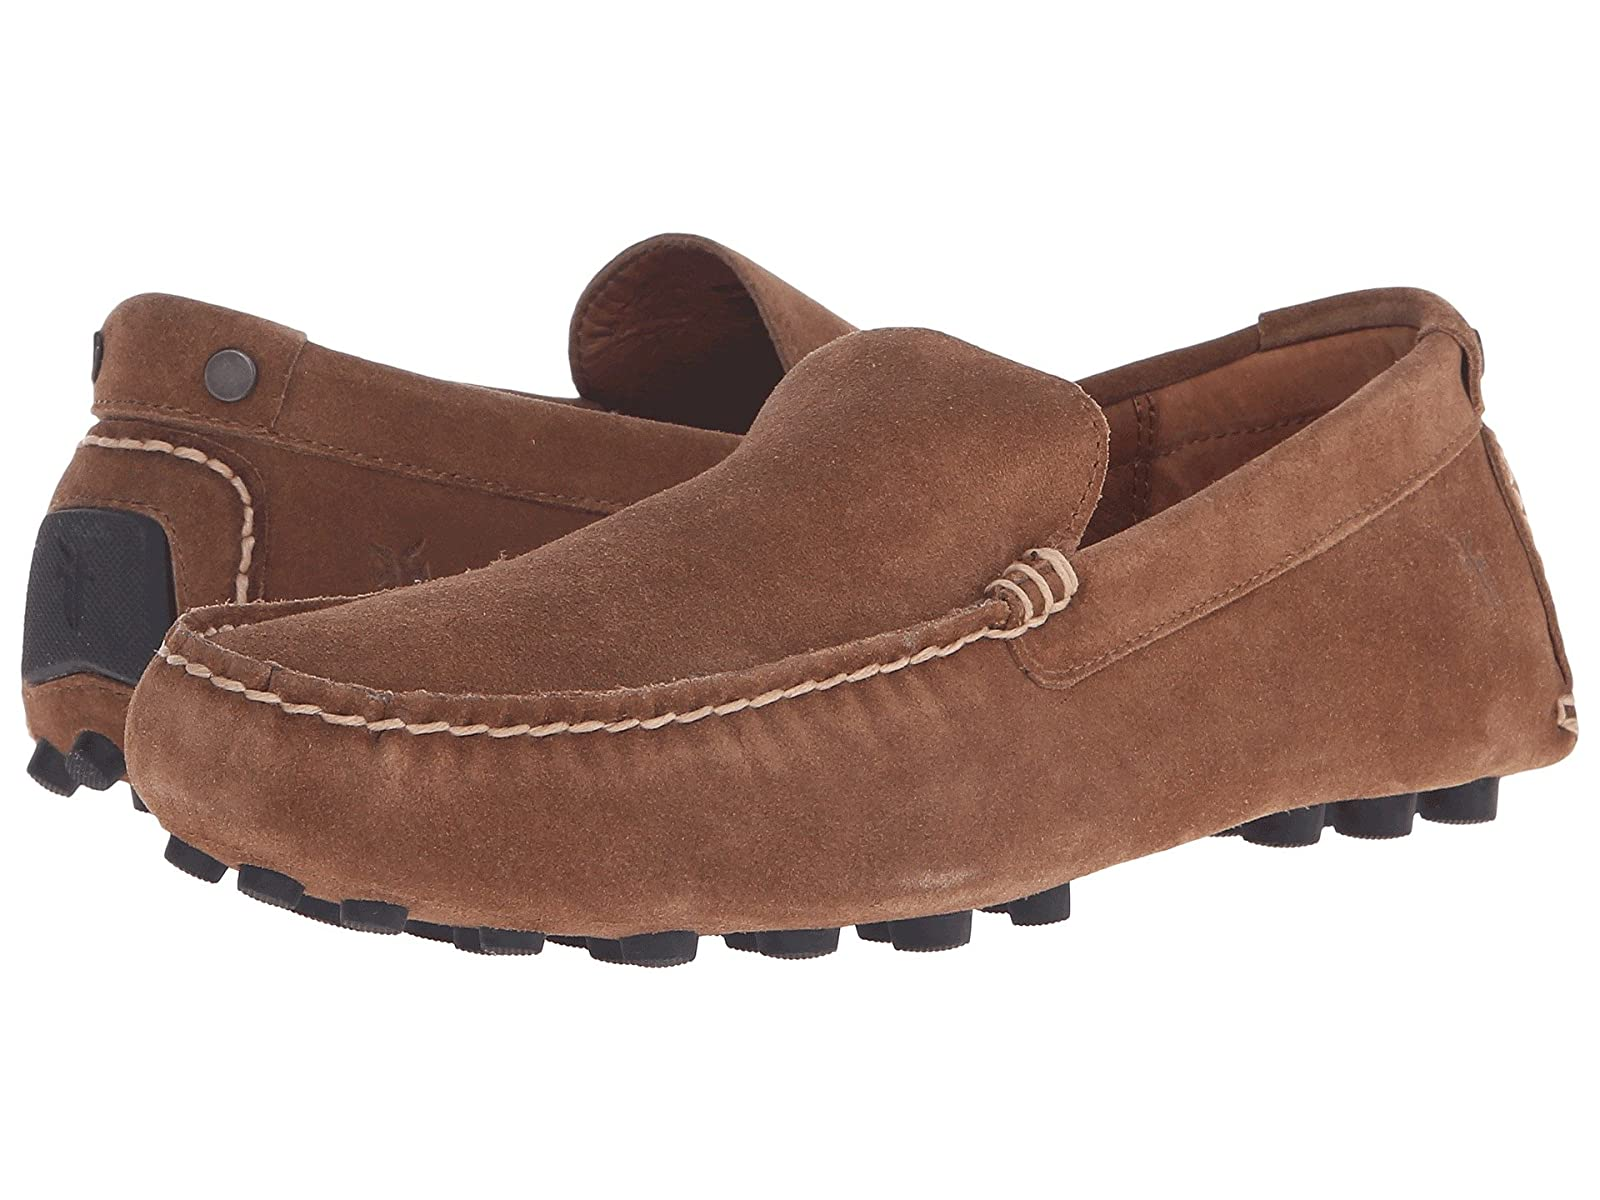 Frye Russel VenetianCheap and distinctive eye-catching shoes